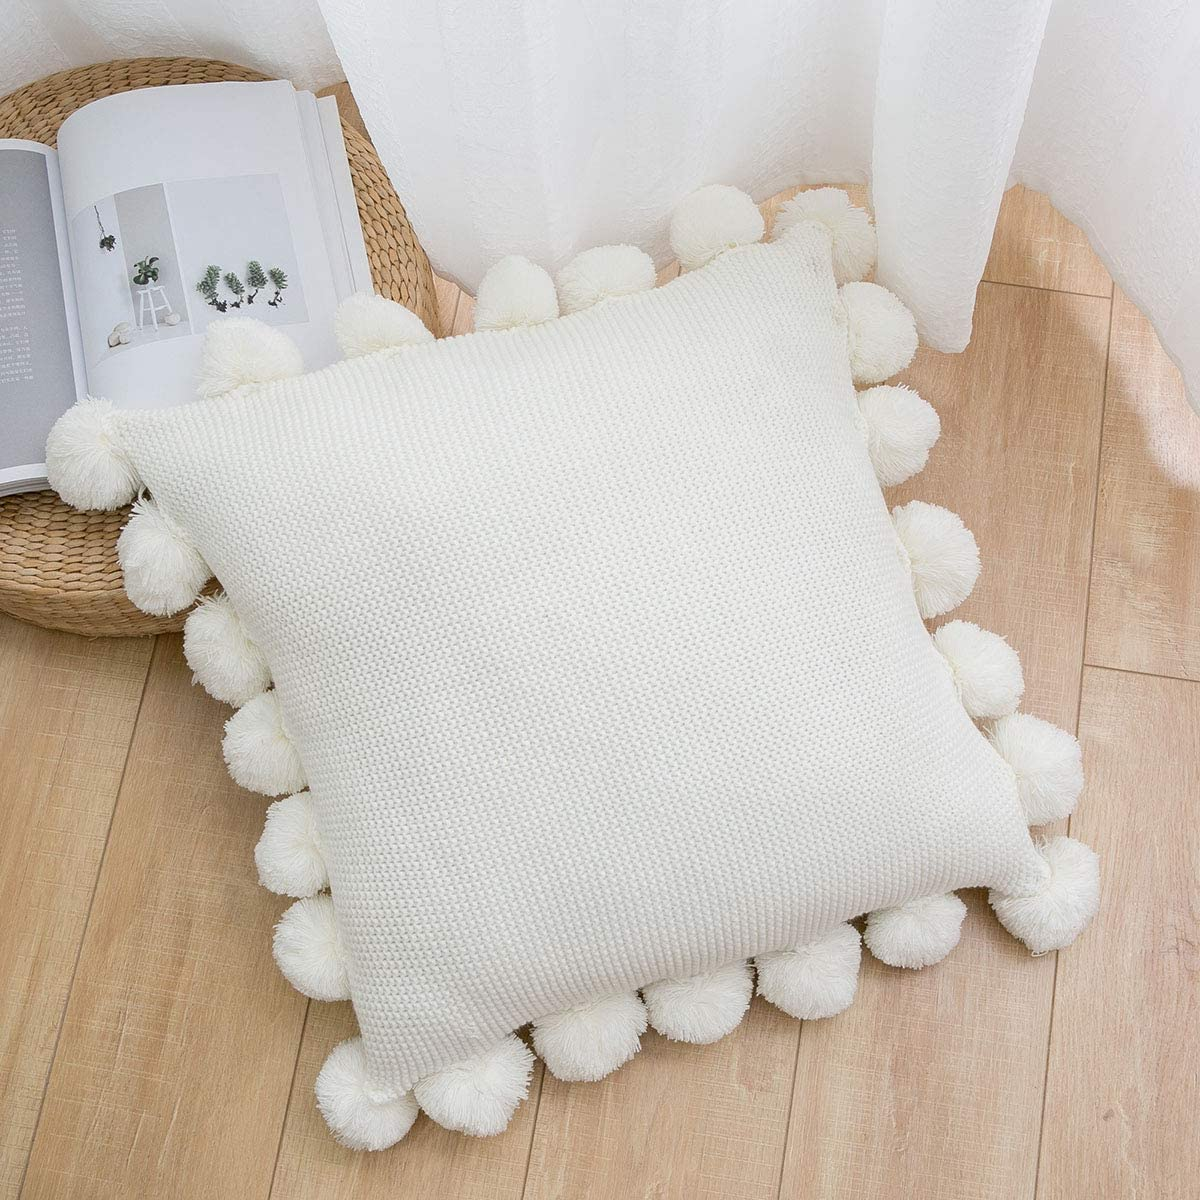 """famibay Knitted Pillow Covers with Pompoms Fringe Striped Cable Knitted Throw Pillow Cases Decorative Pillow Cushion Cover Set for Home Sofa Couch Bed 18"""" x 18"""" Cream"""